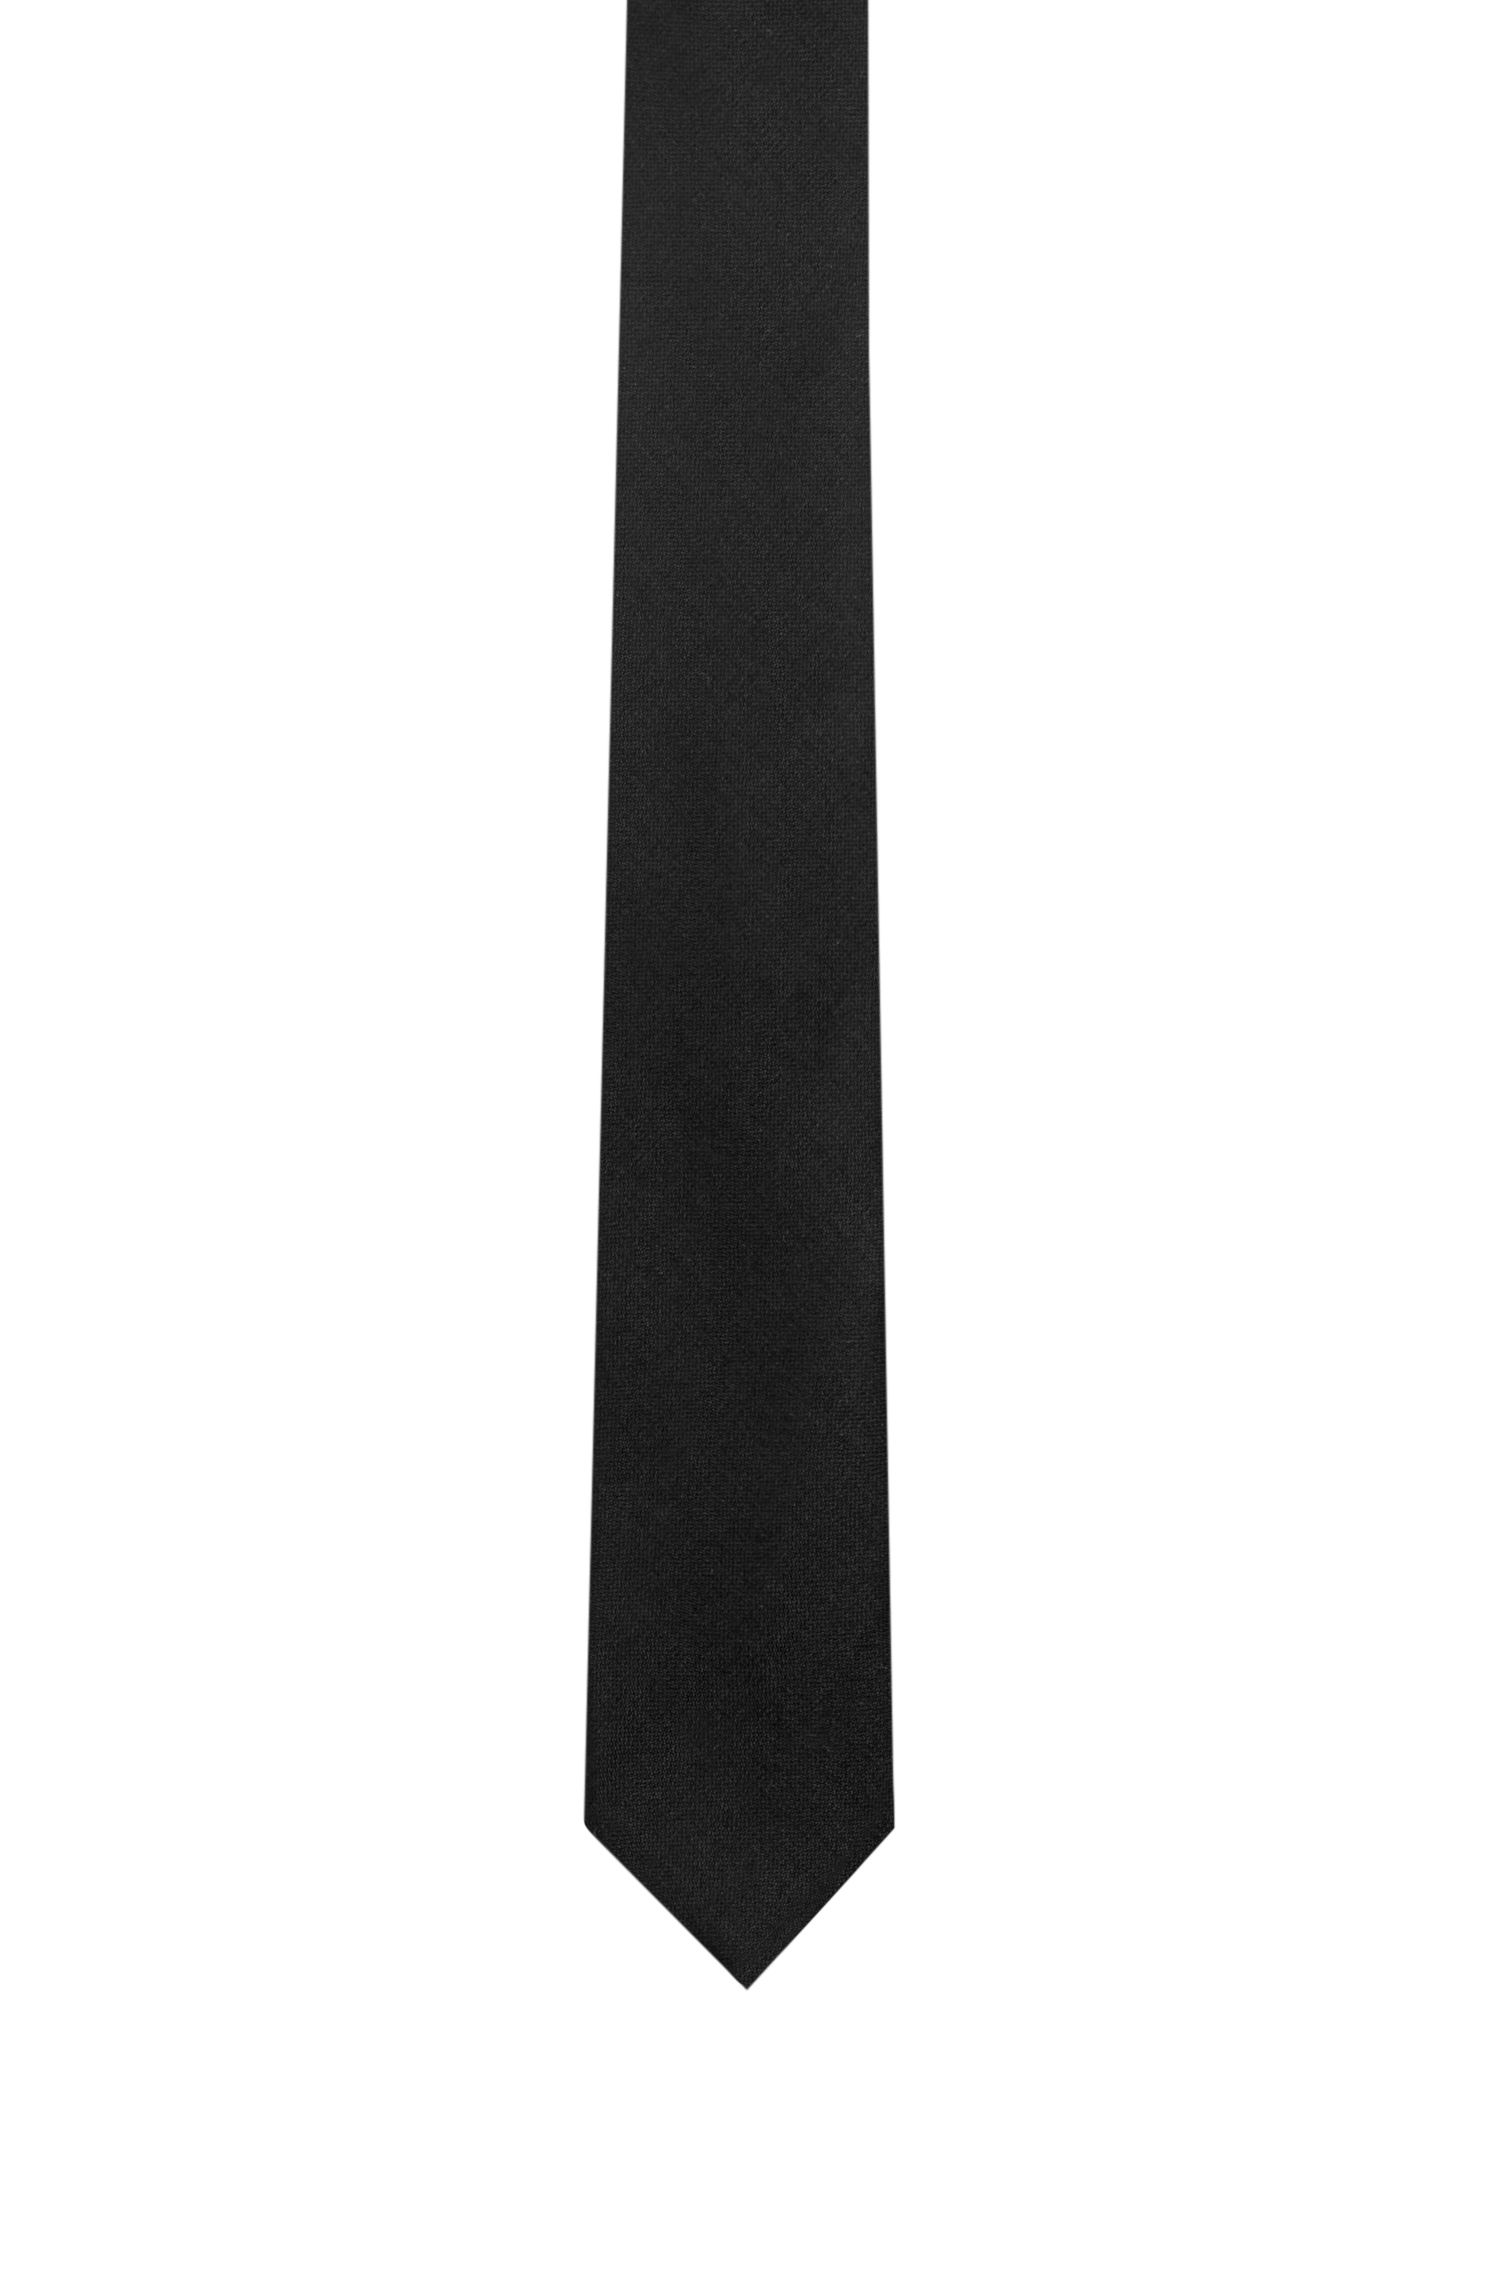 Embroidered Virgin Wool Slim Tie, Black